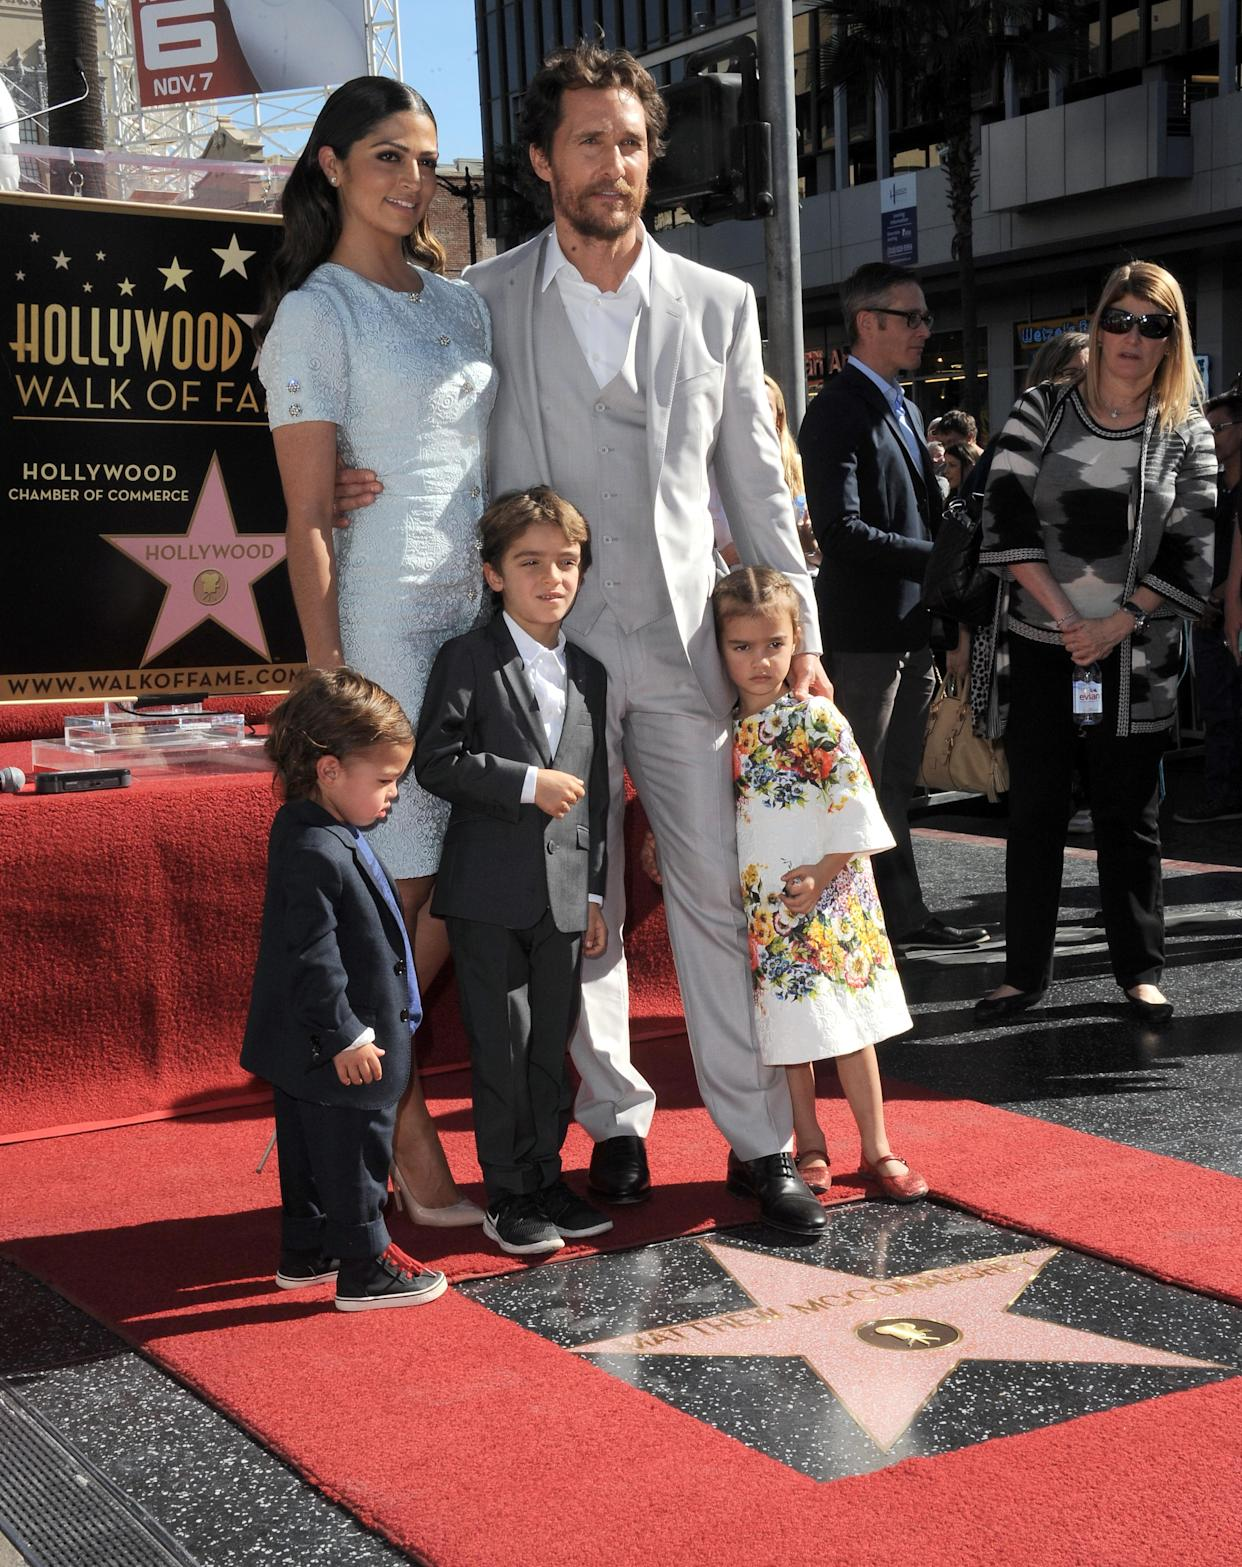 Matthew McConaughey with wife Camila and their three kids (Livingston, Levi and Vida) in 2014. (Photo: Albert L. Ortega/Getty Images)